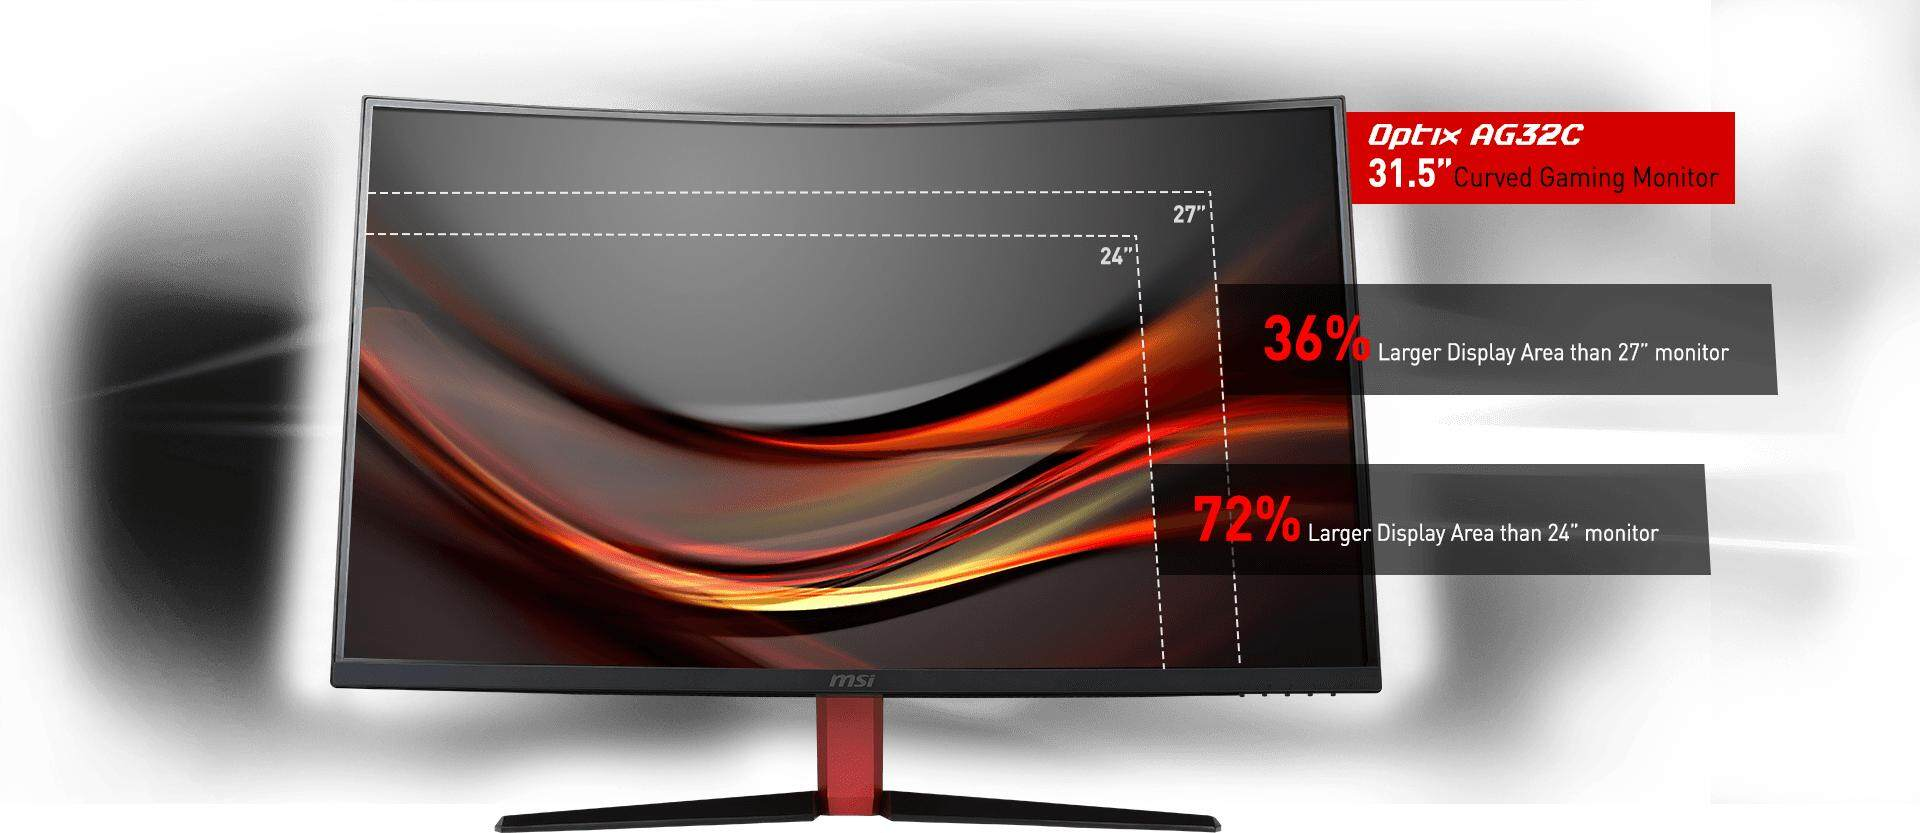 MSI Optix AG32C Curved Gaming Monitor | Game Hypermart